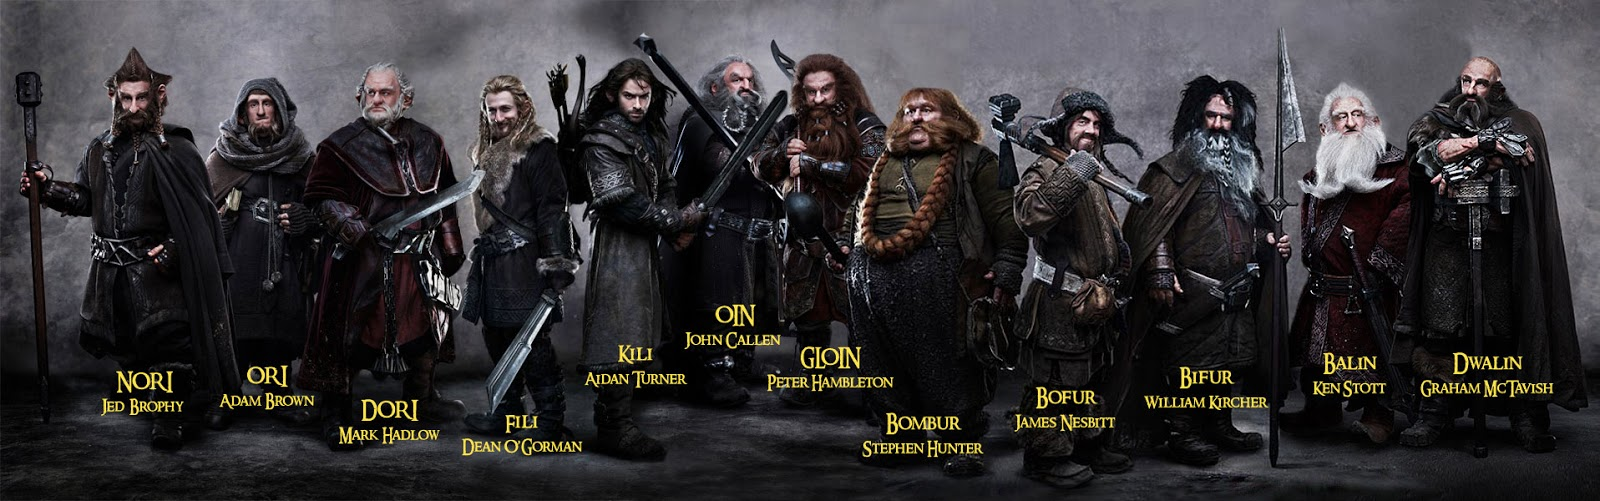 the dwarves of the hobbit the hobbit features a band of dwarves led by ...